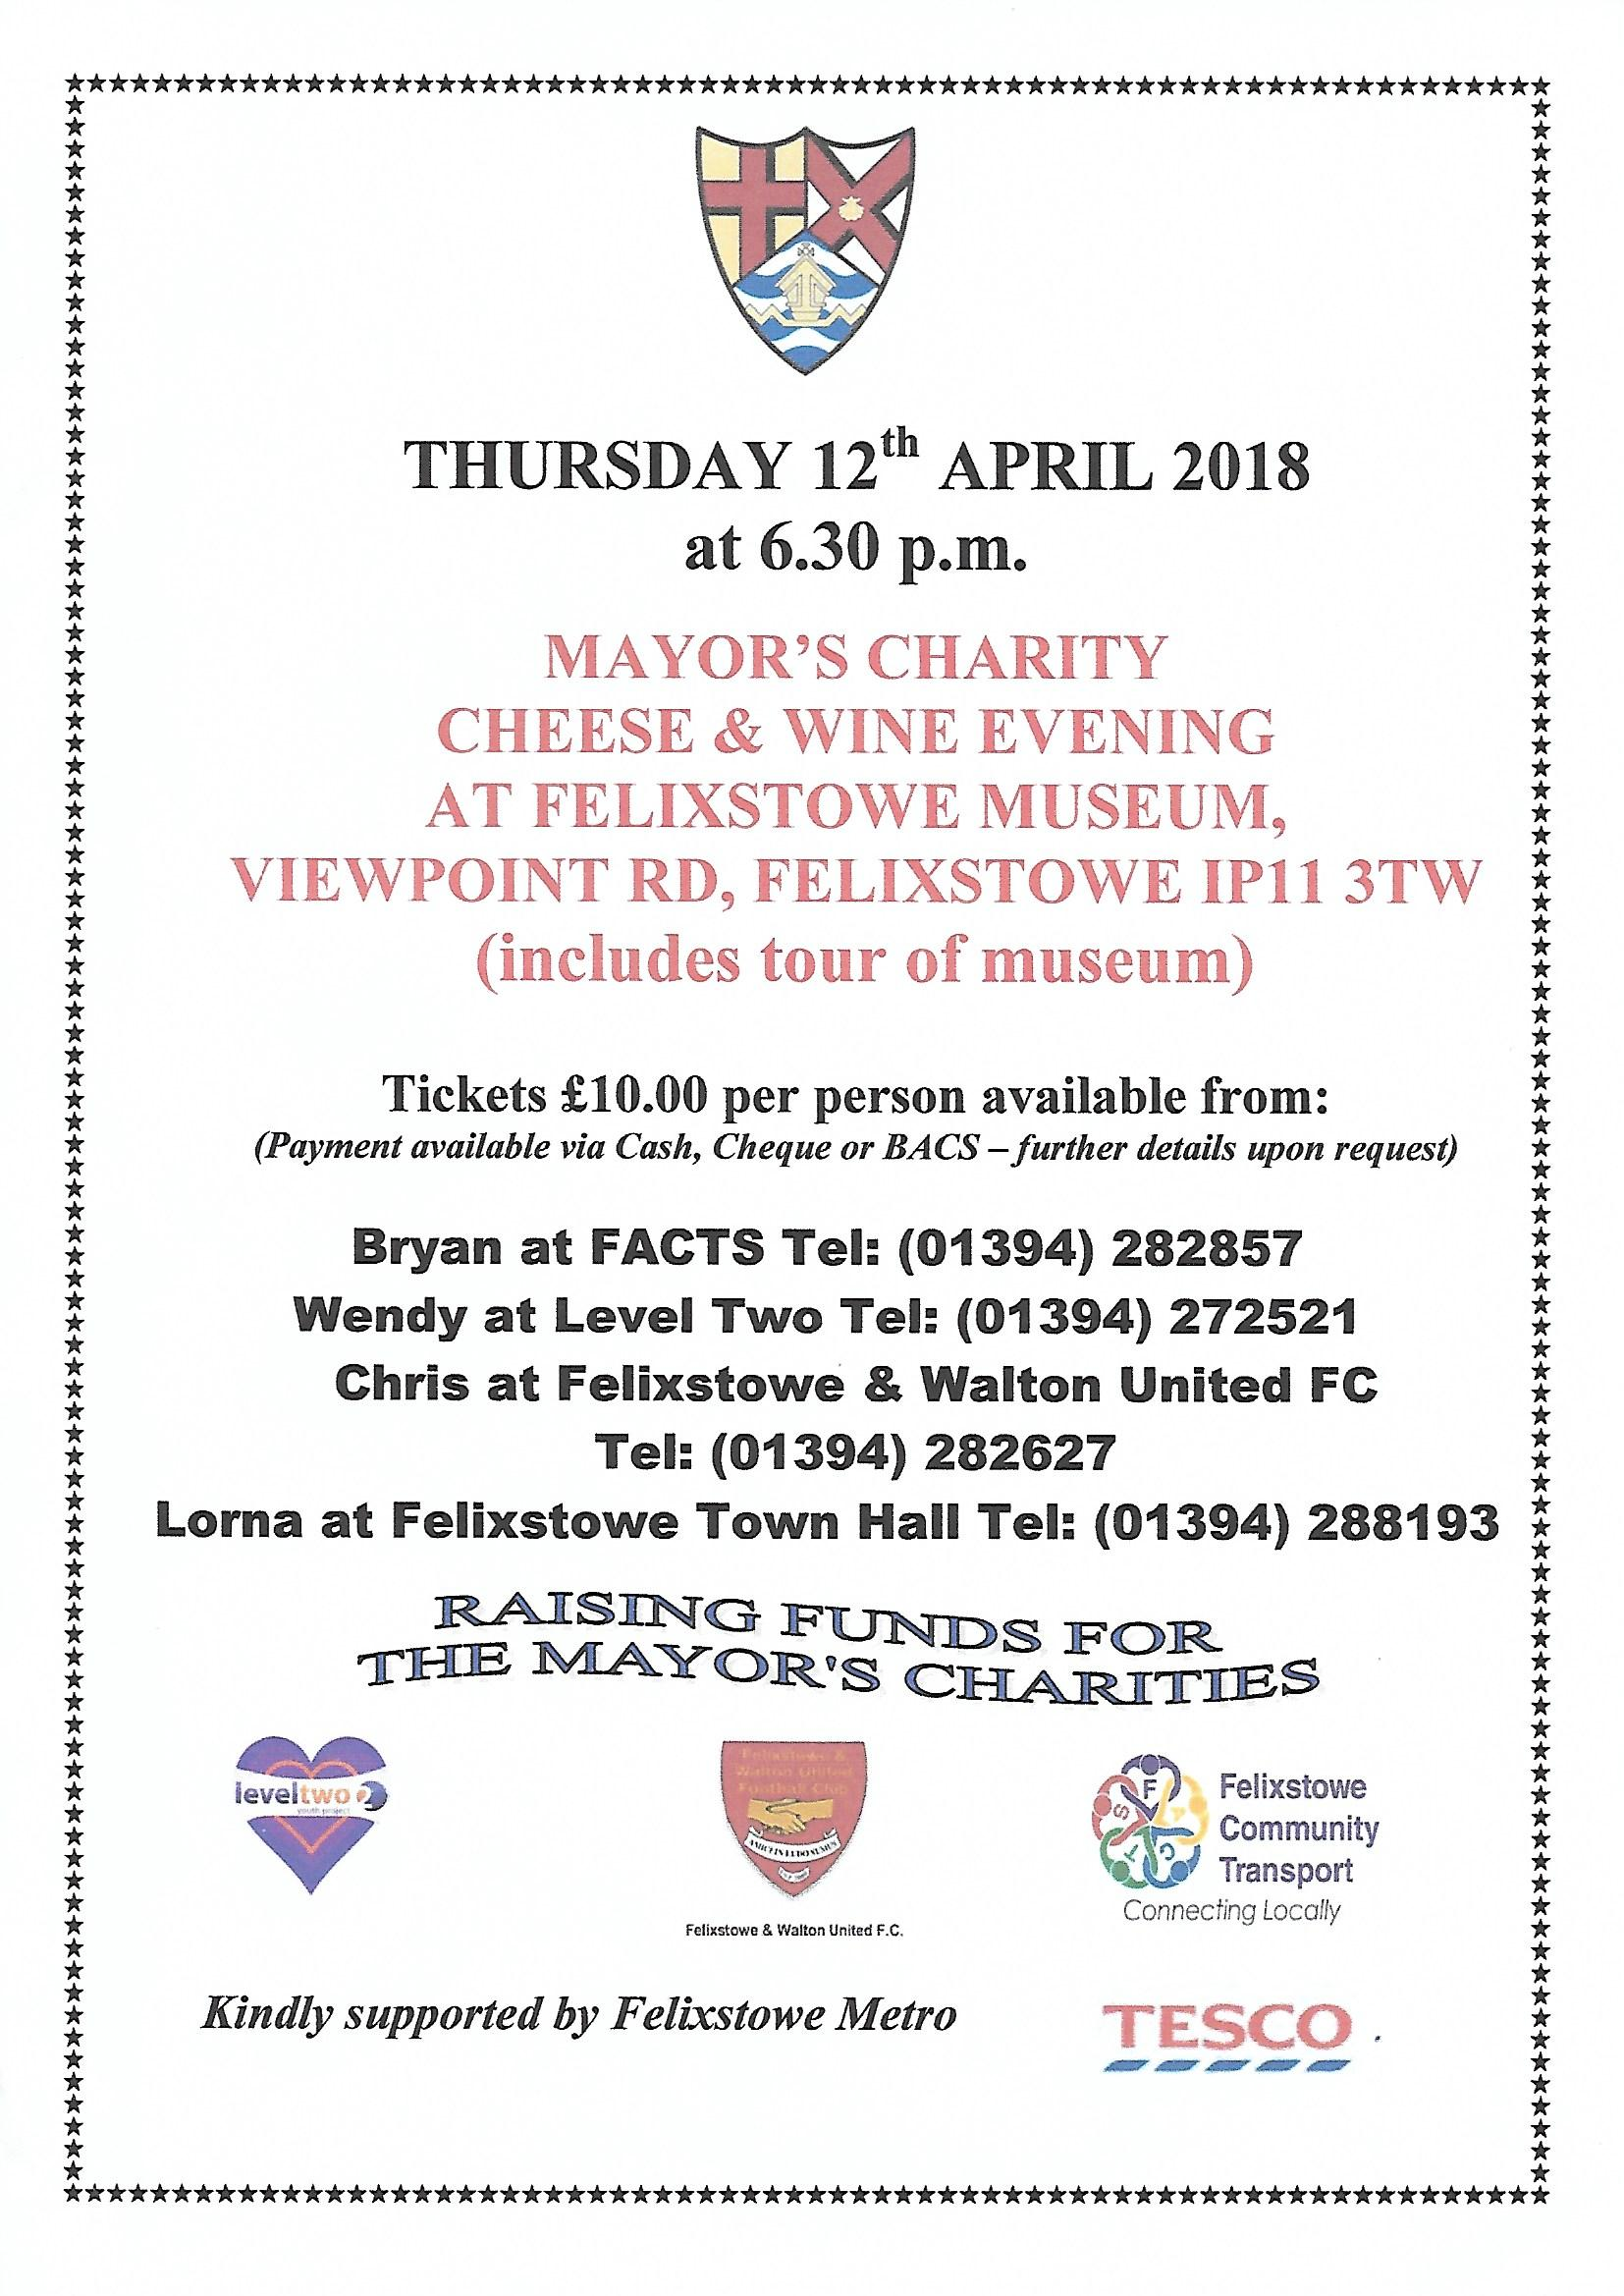 Mayor's Cheese and Wine Evening at Felixstowe Museum, Tuesday 12 April 2018